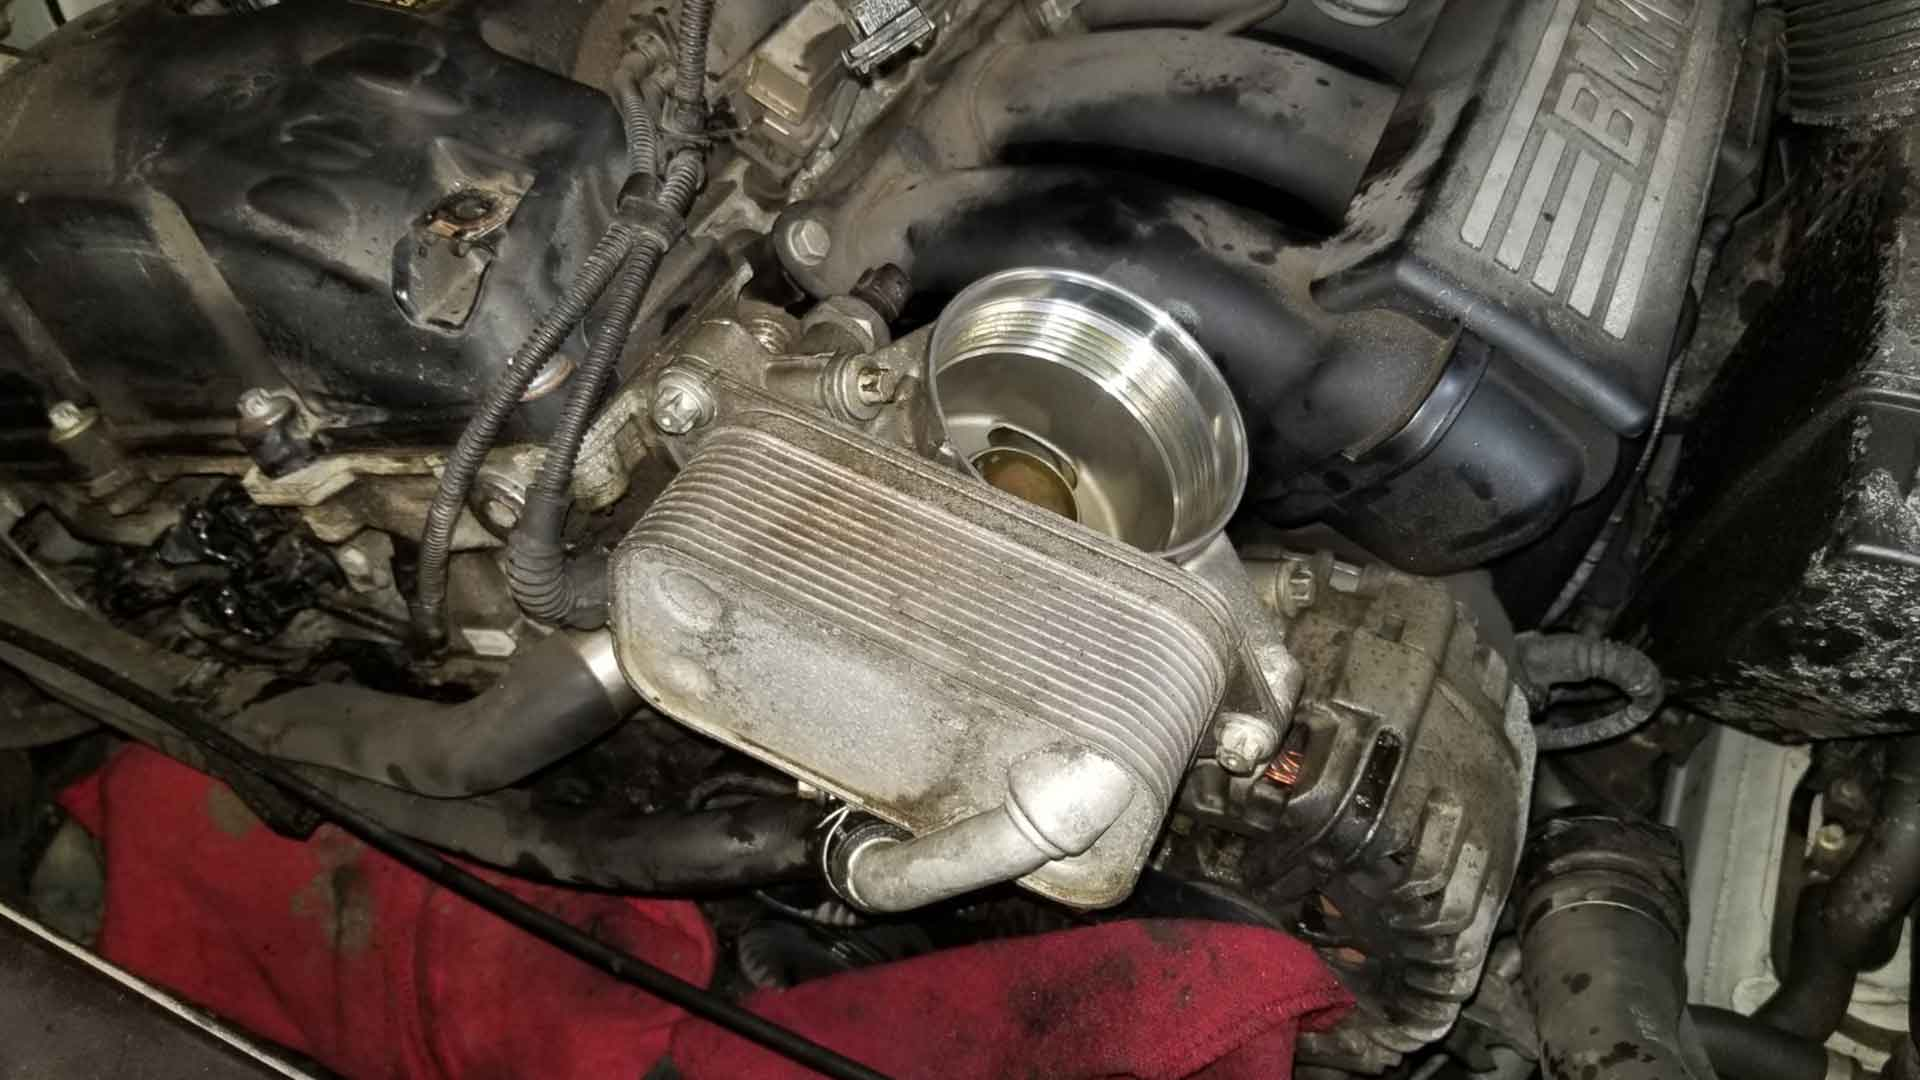 BMW Oil Filter Housing Leak